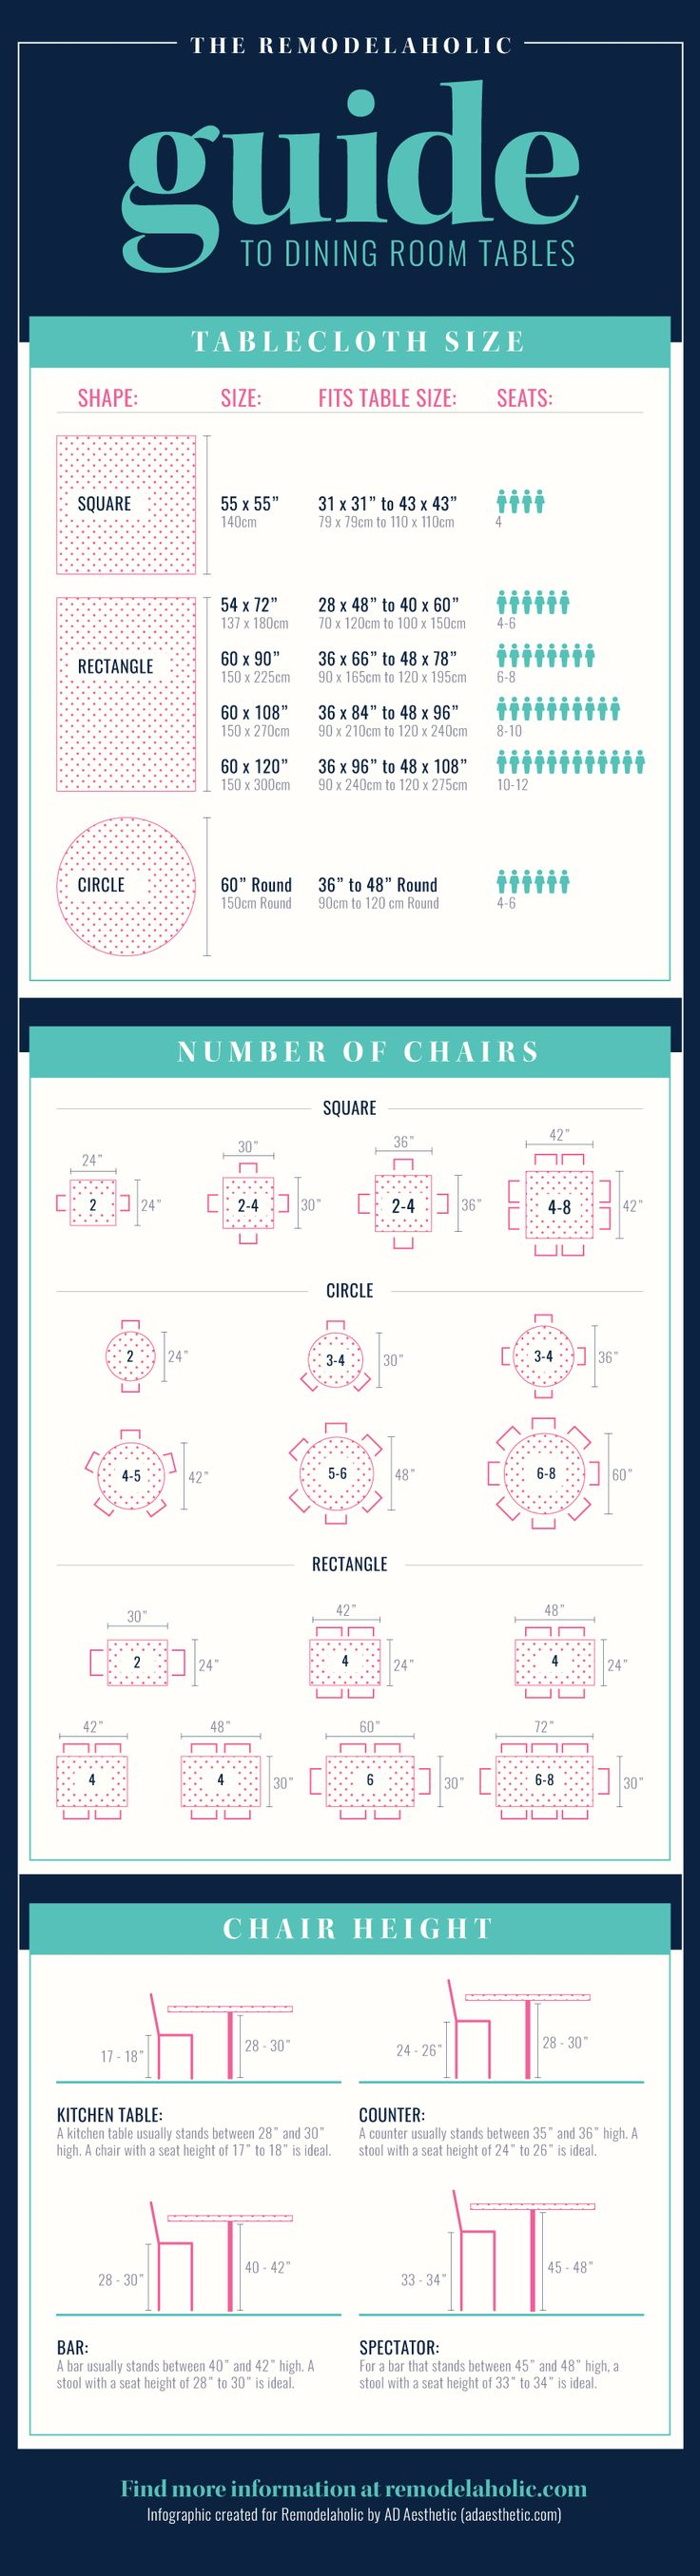 This Has ALL The Best Info About Dining Table Sizes! Standard Sizes Part 53